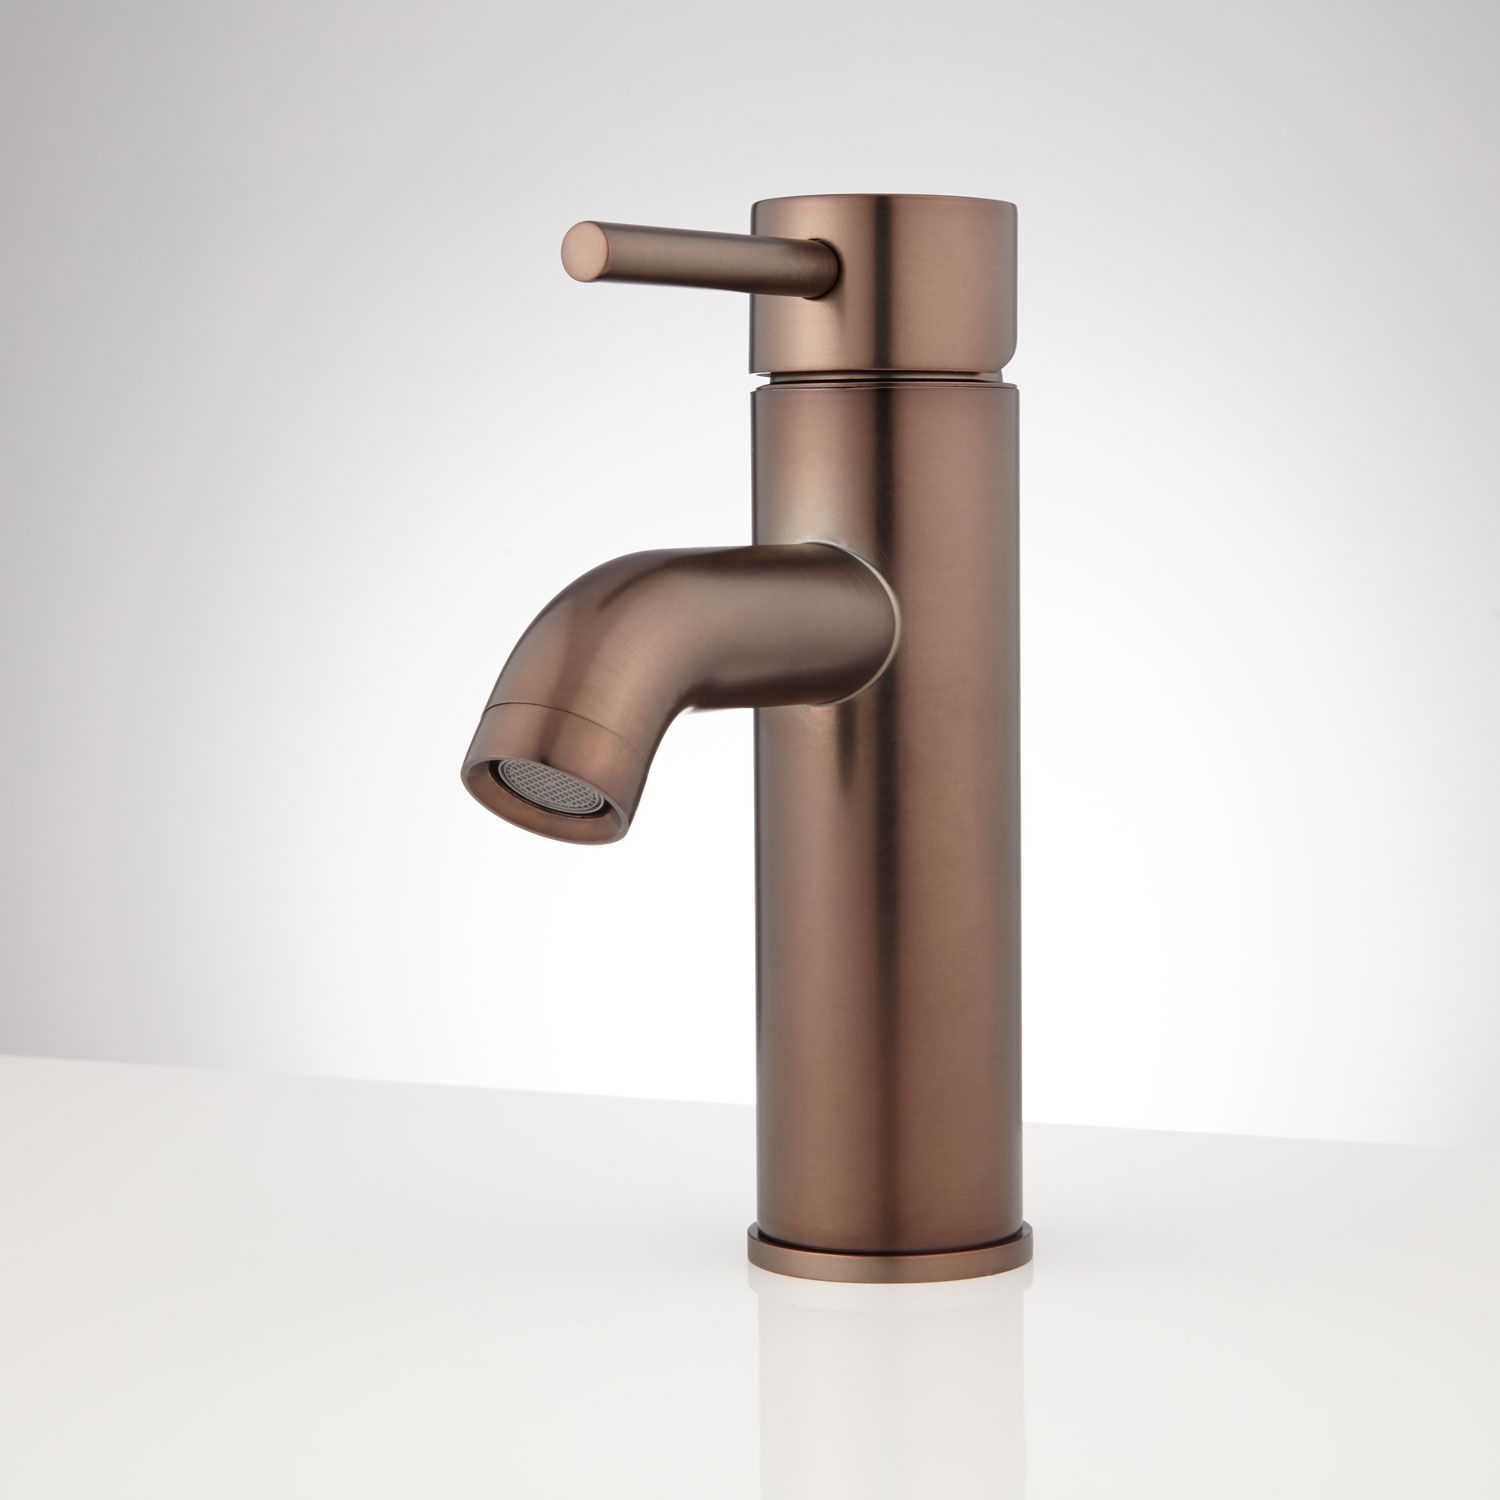 Oxley Single-Hole Bathroom Faucet - No Overflow - Oil Rubbed Bronze